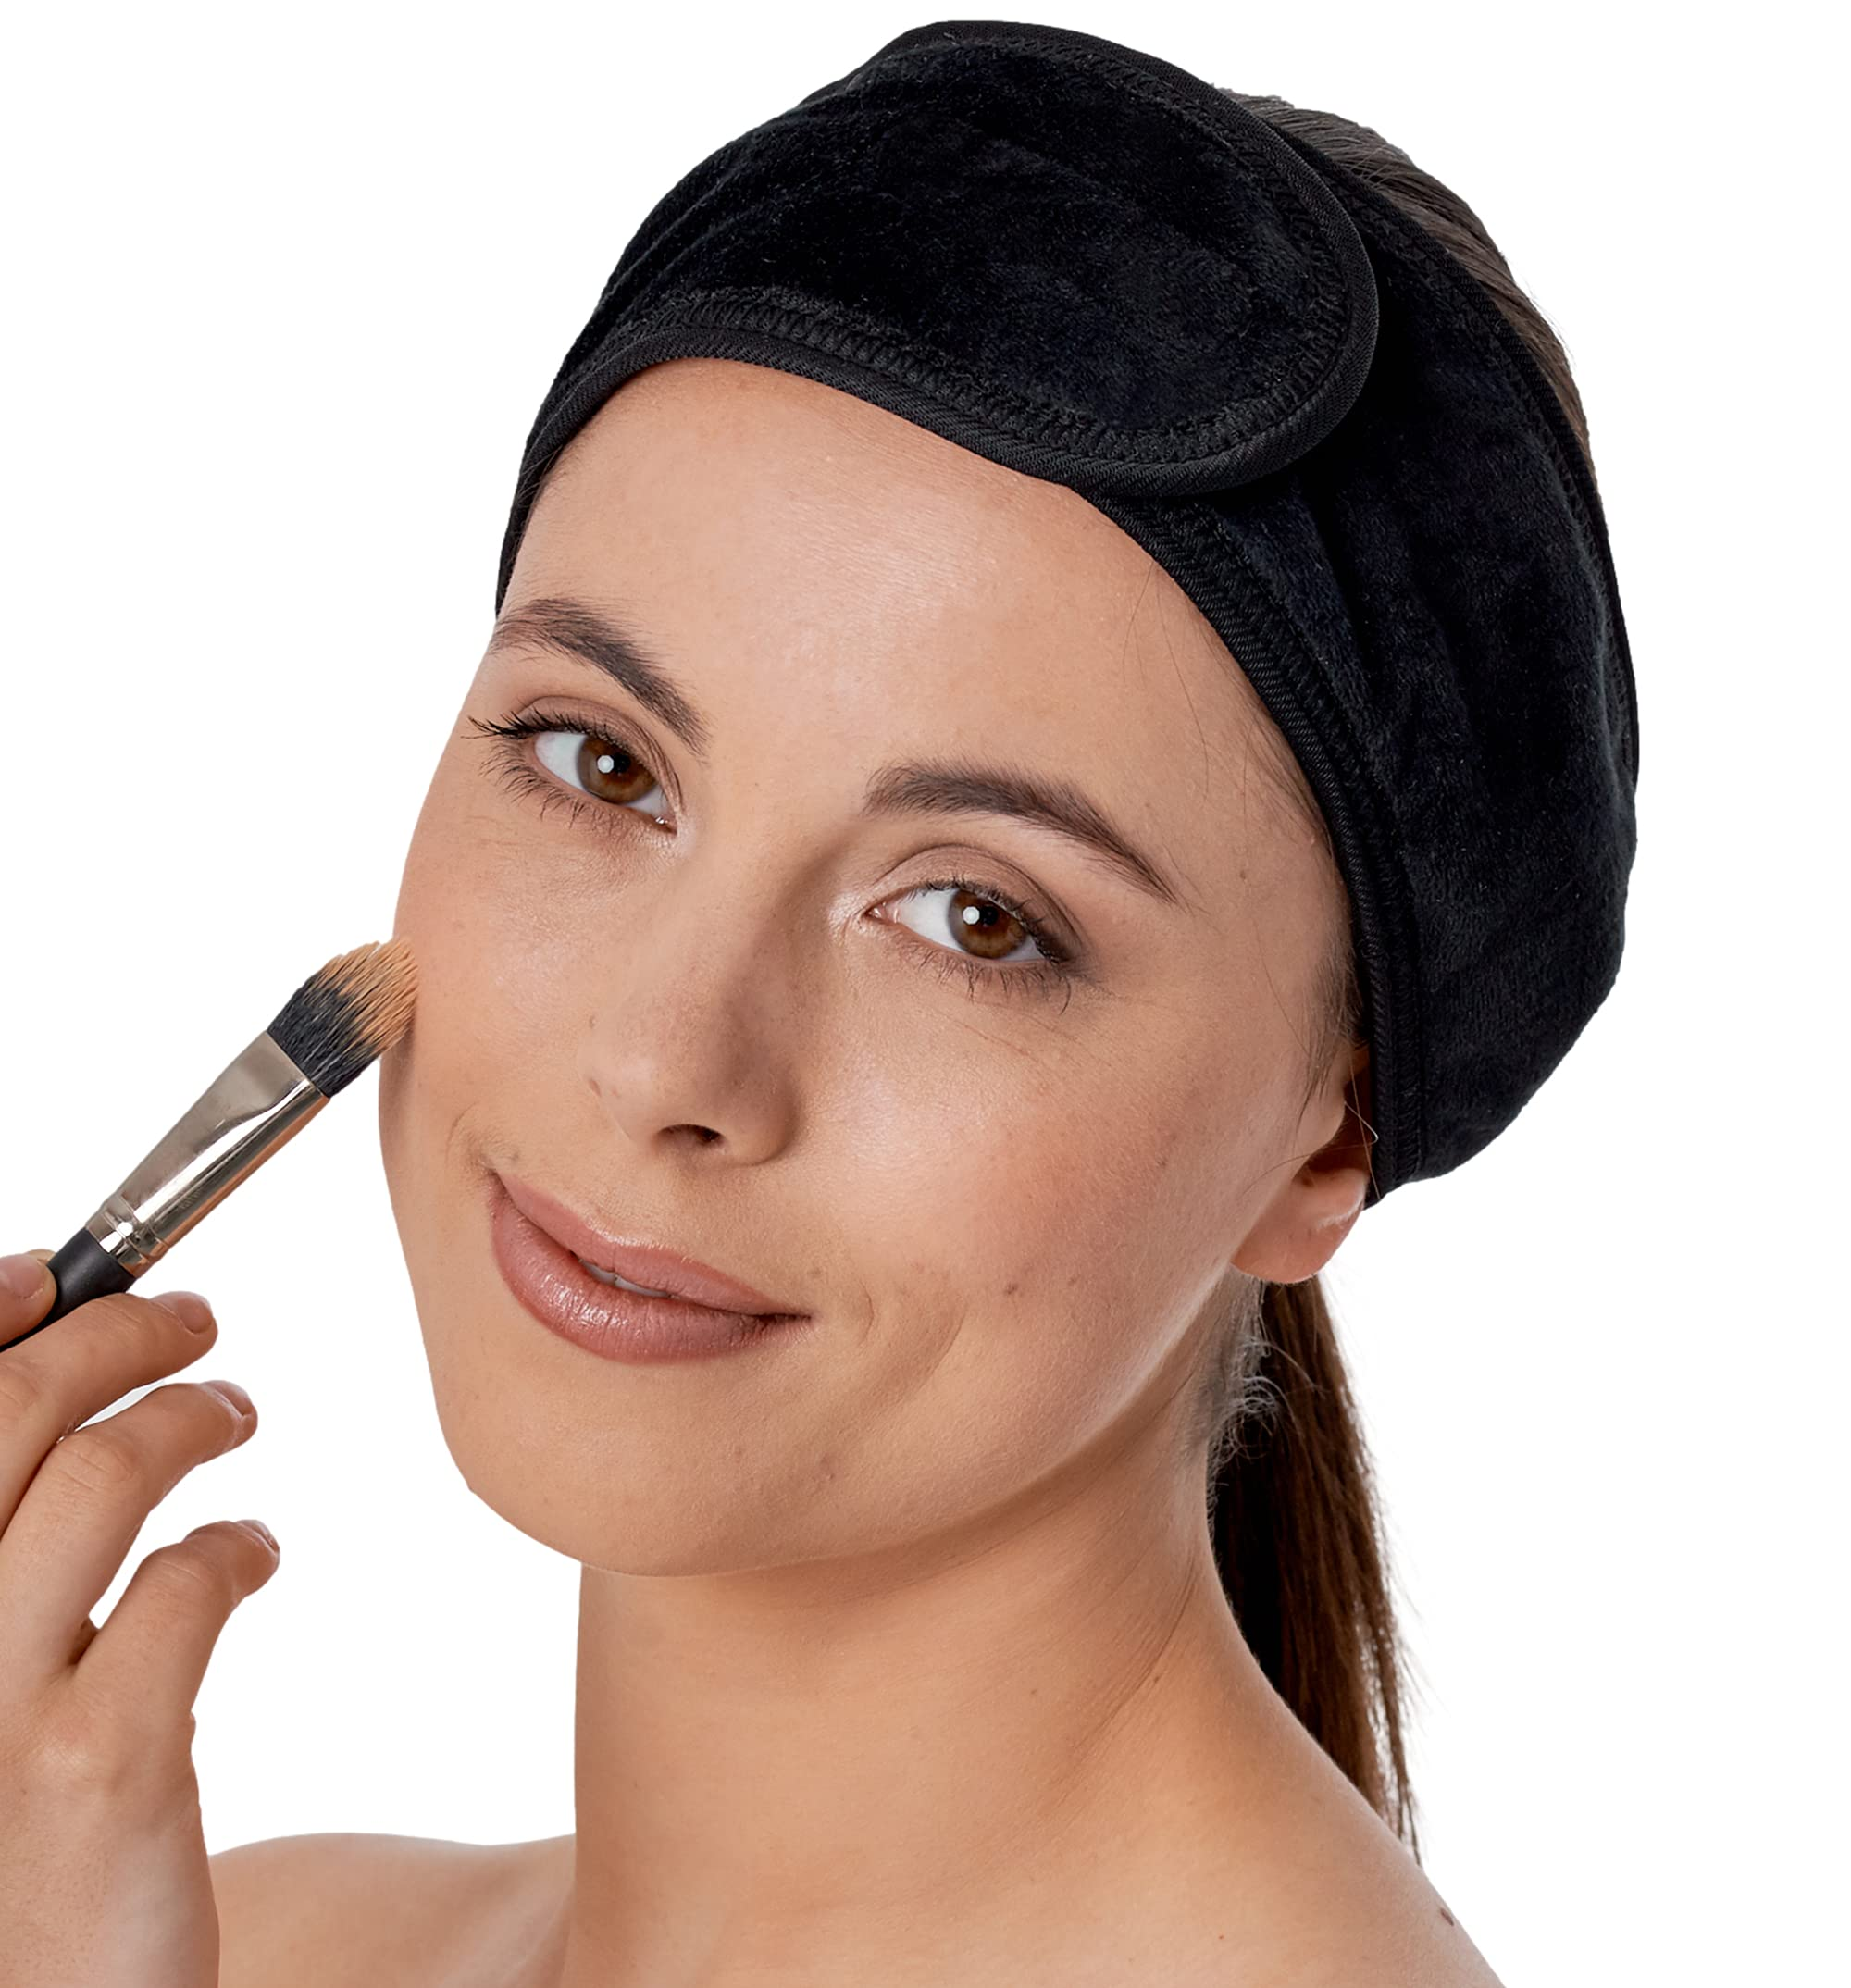 Spa Headband for Washing Face - Makeup & Skincare Face Wash Head Band - Face Mask Towel Terry Hair Band for Women - Black